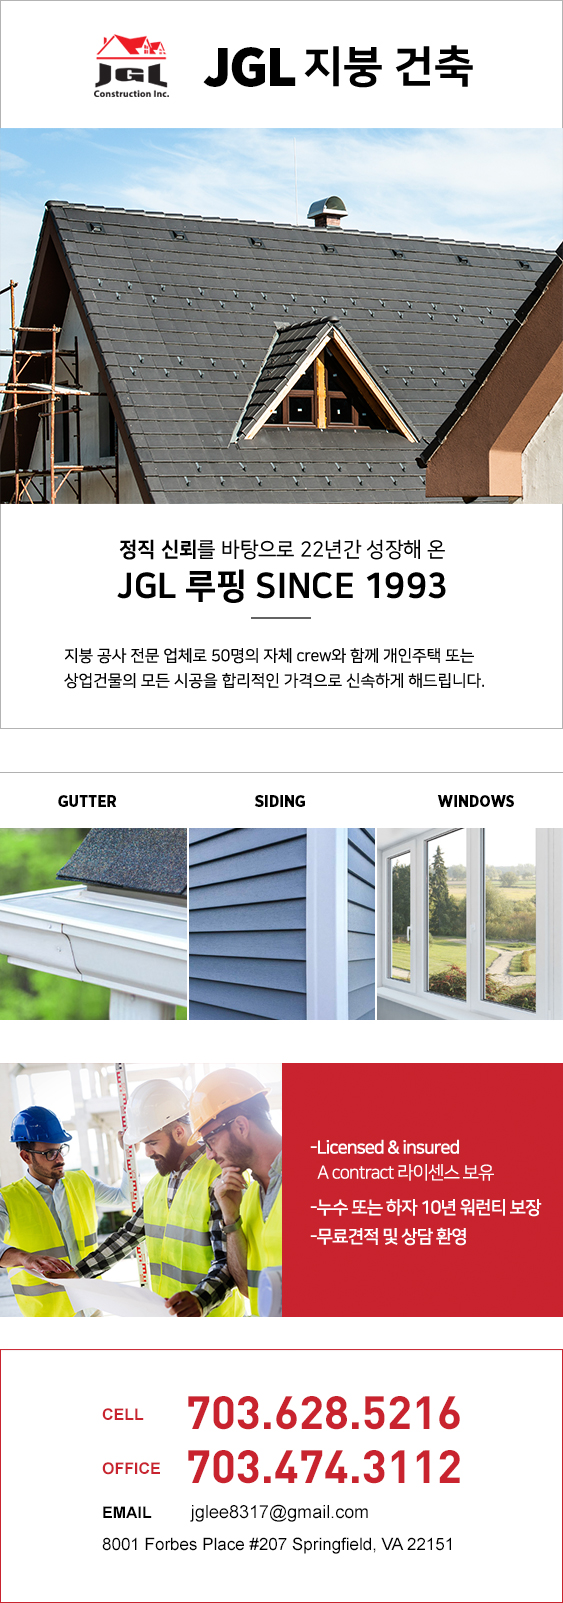 JGL Construction INC